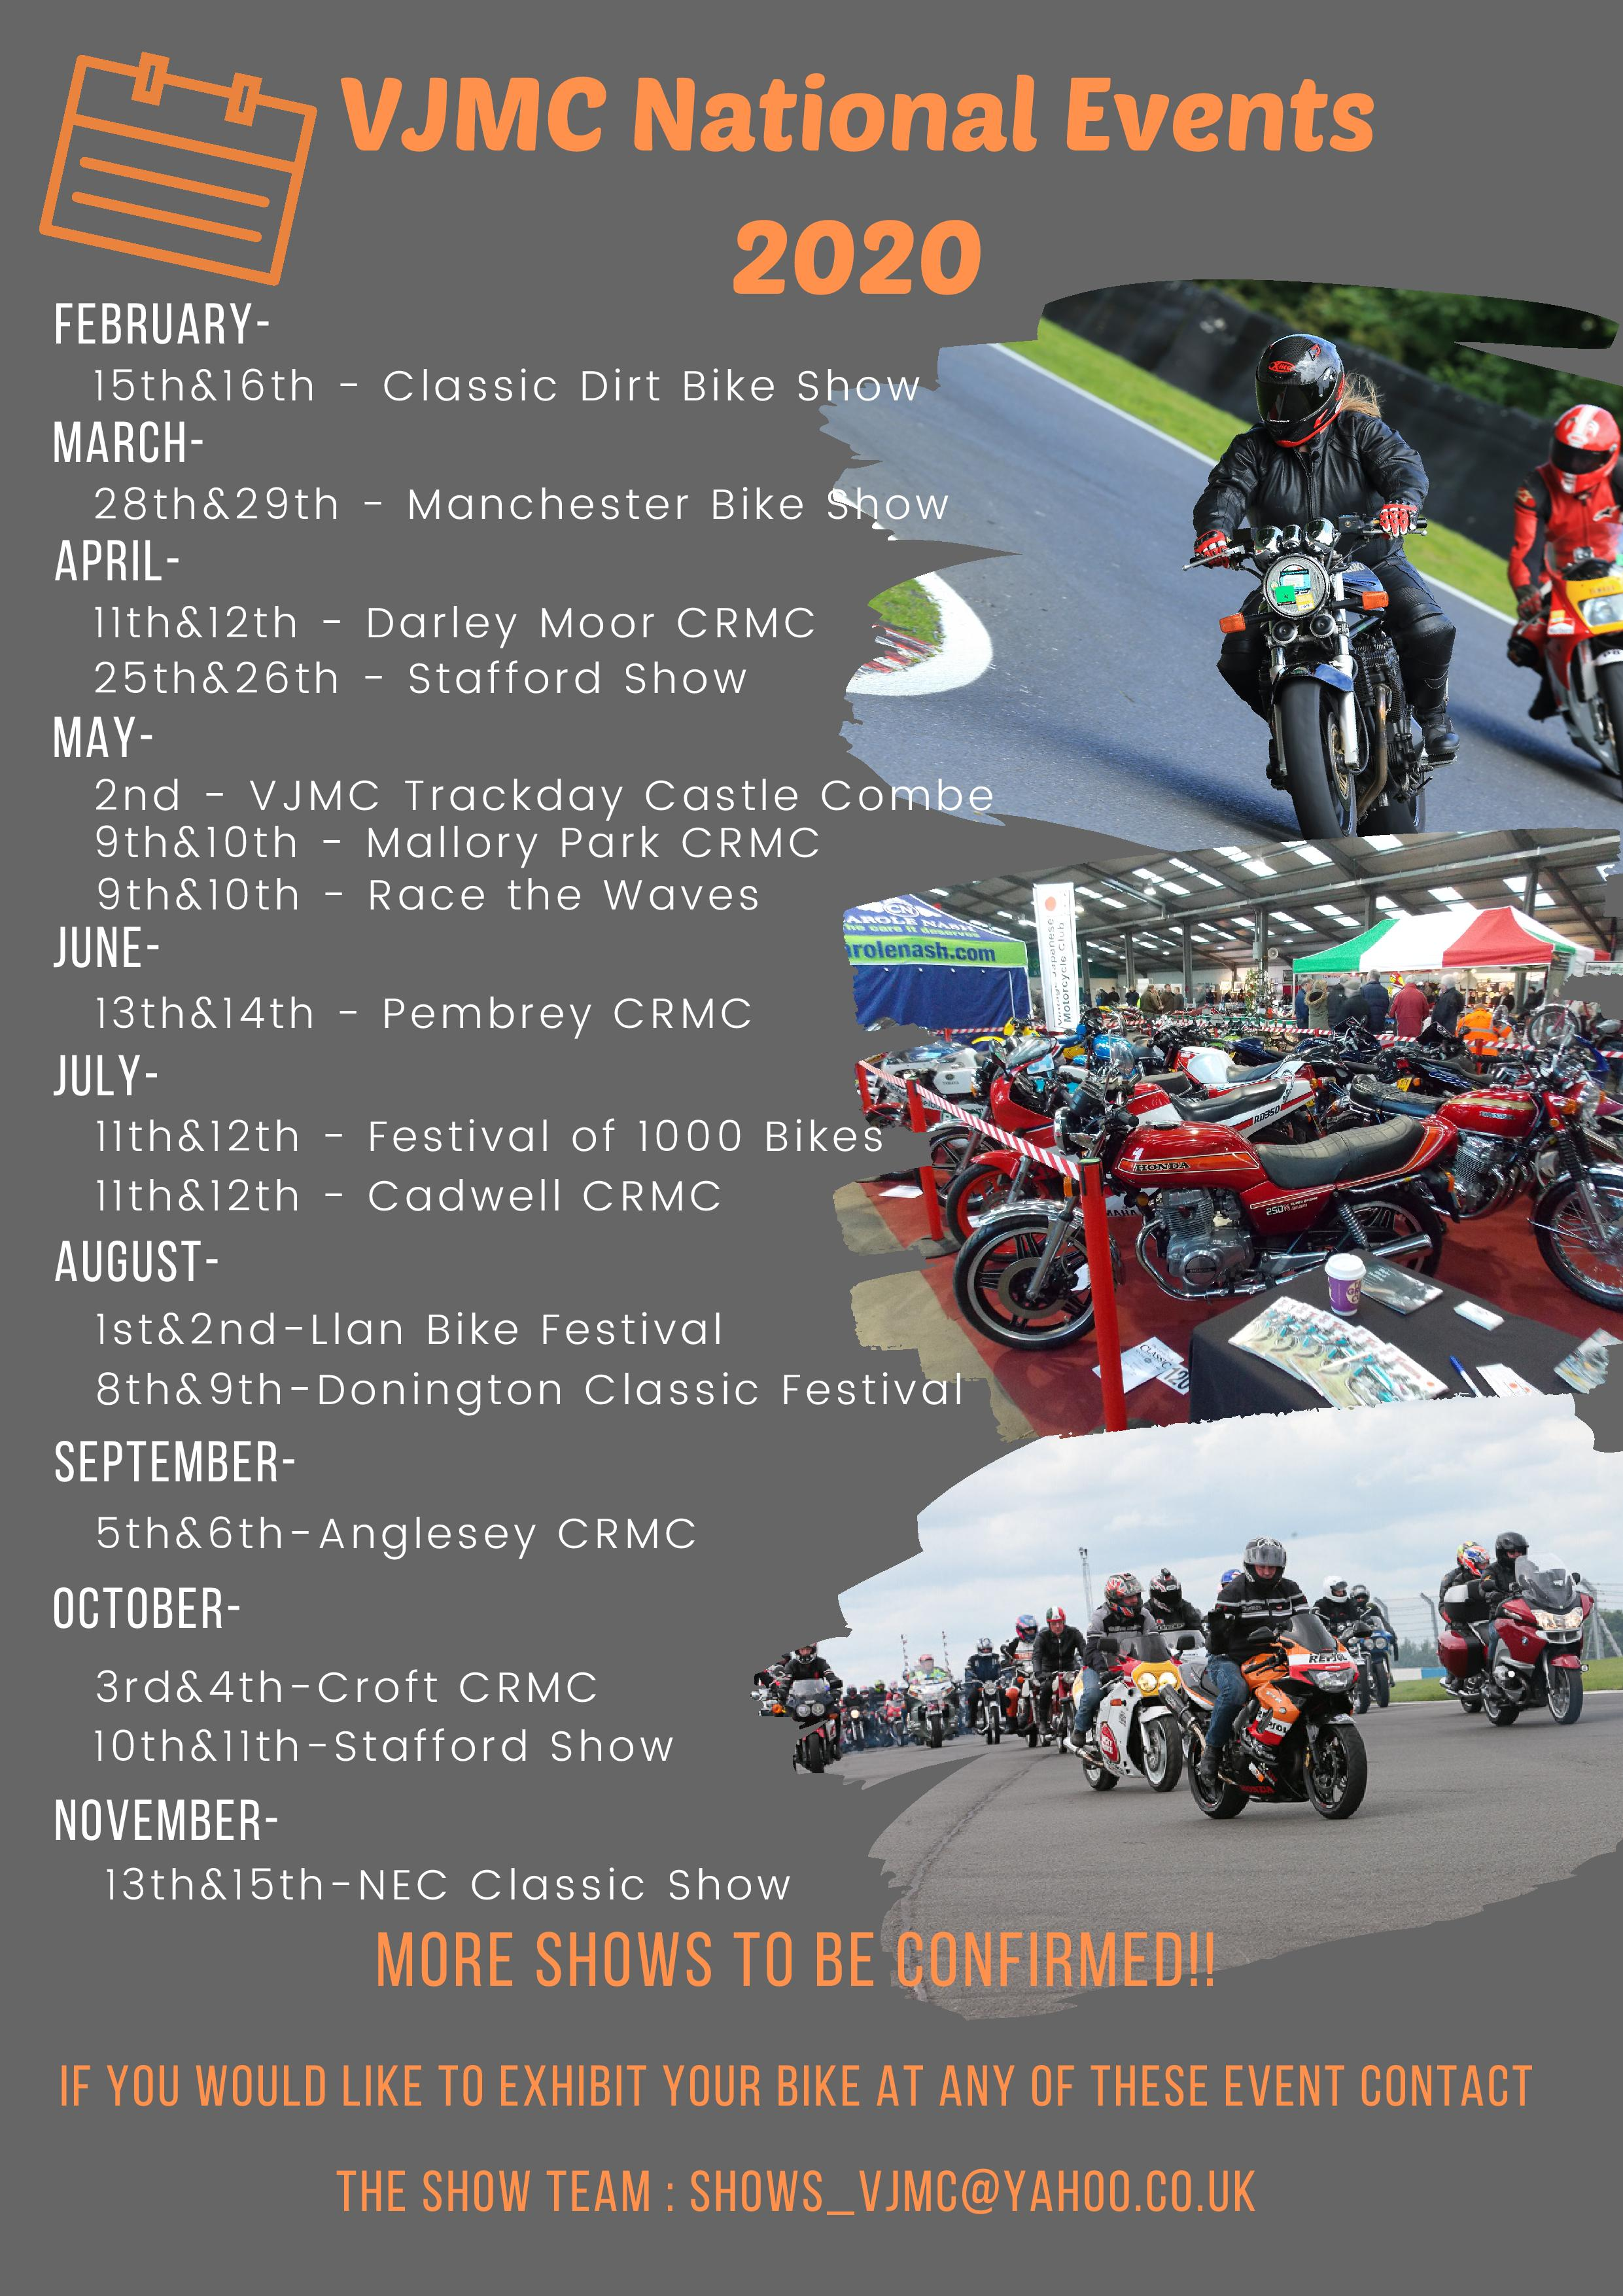 VJMC National Events 2020